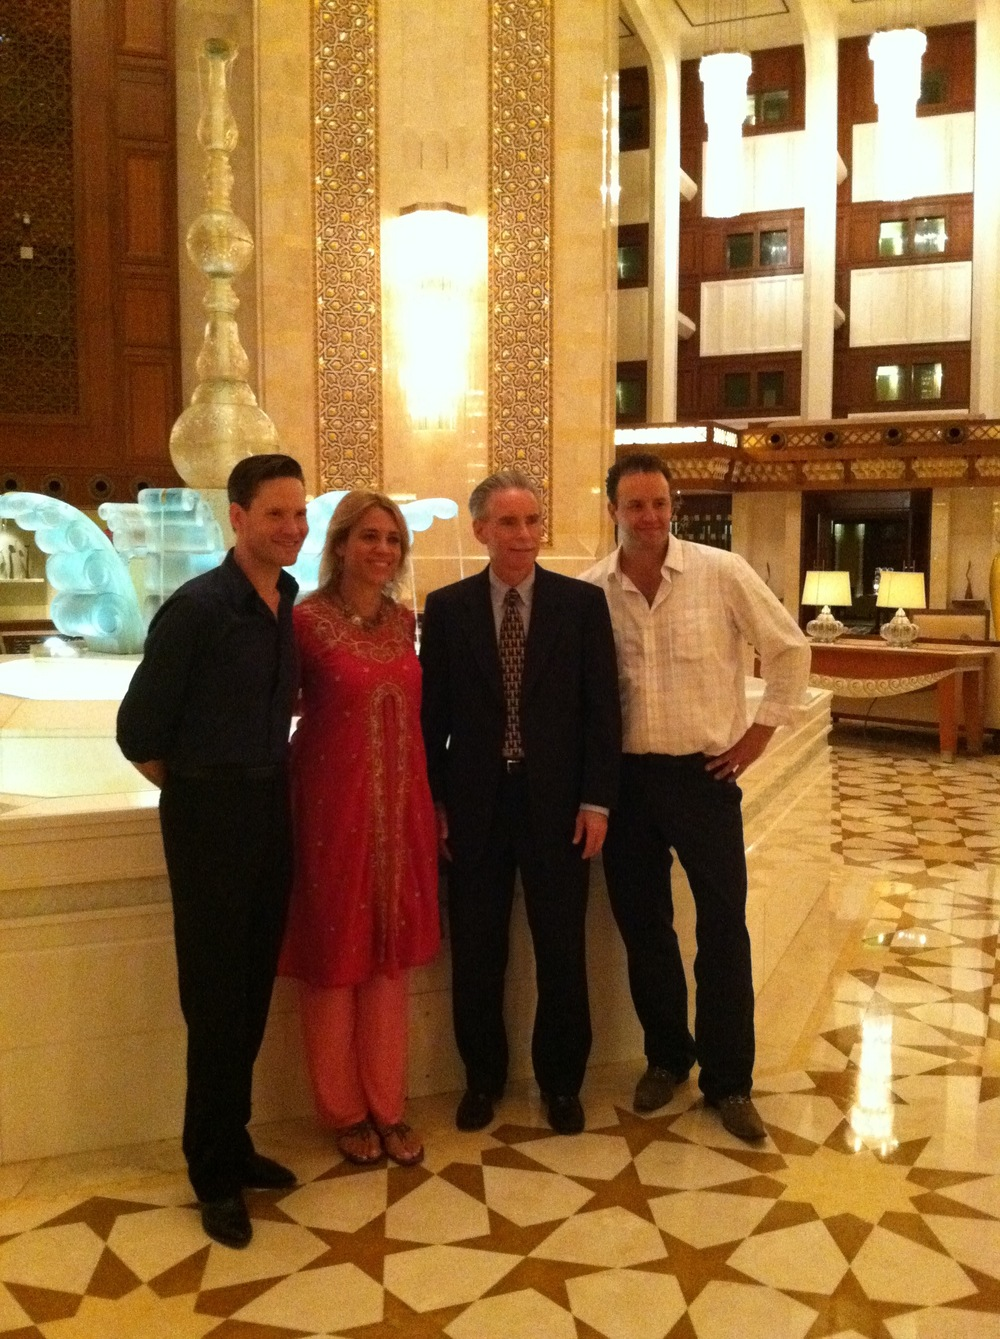 With the Hot Club of Cowtown and US Ambassador to the Sultanate of Oman   Richard Schmierer